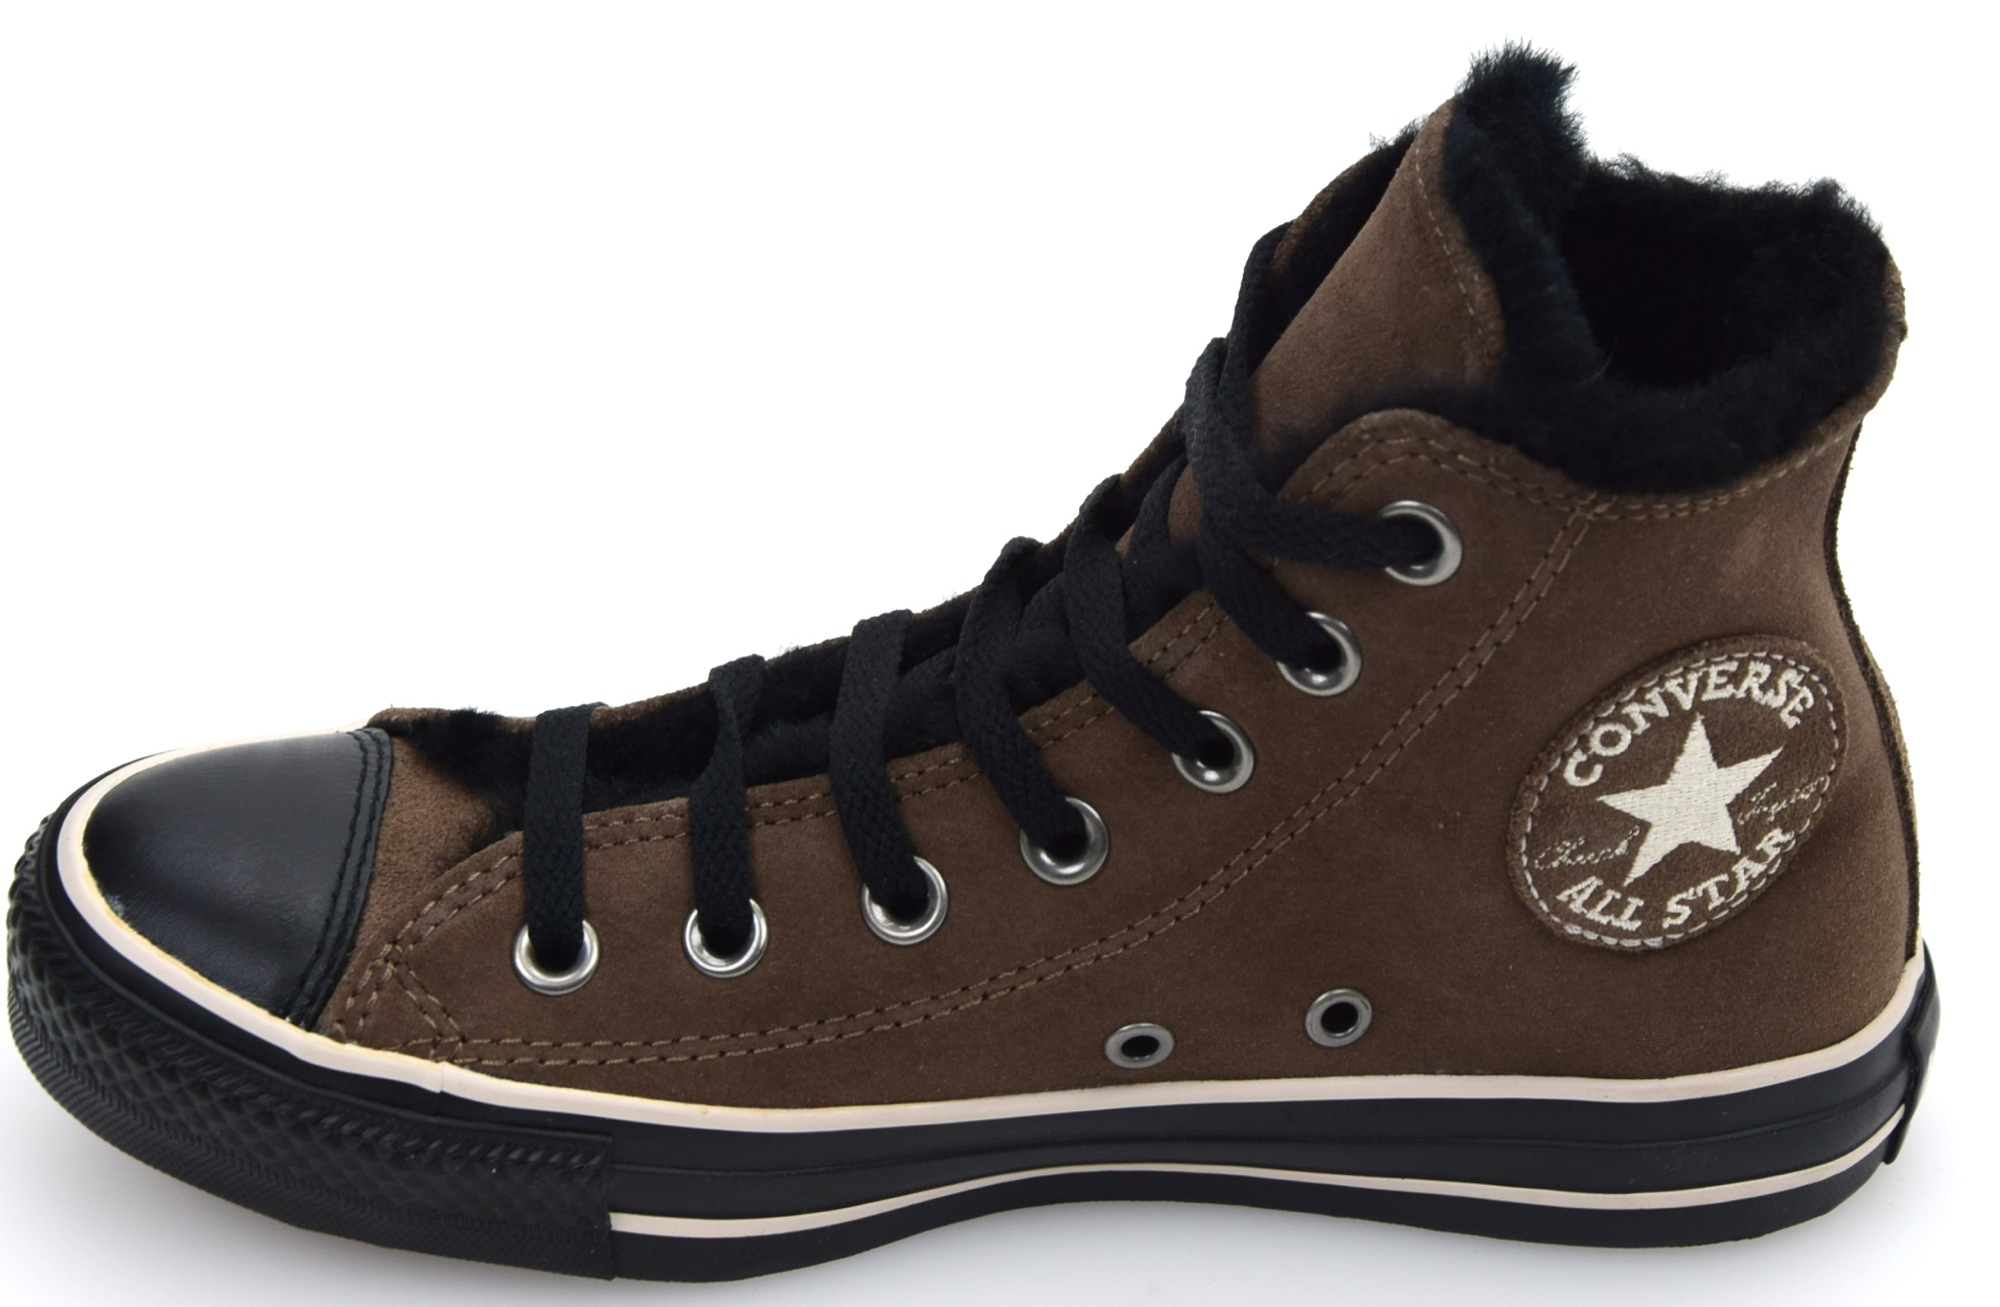 converse all sneaker shoes brown and black